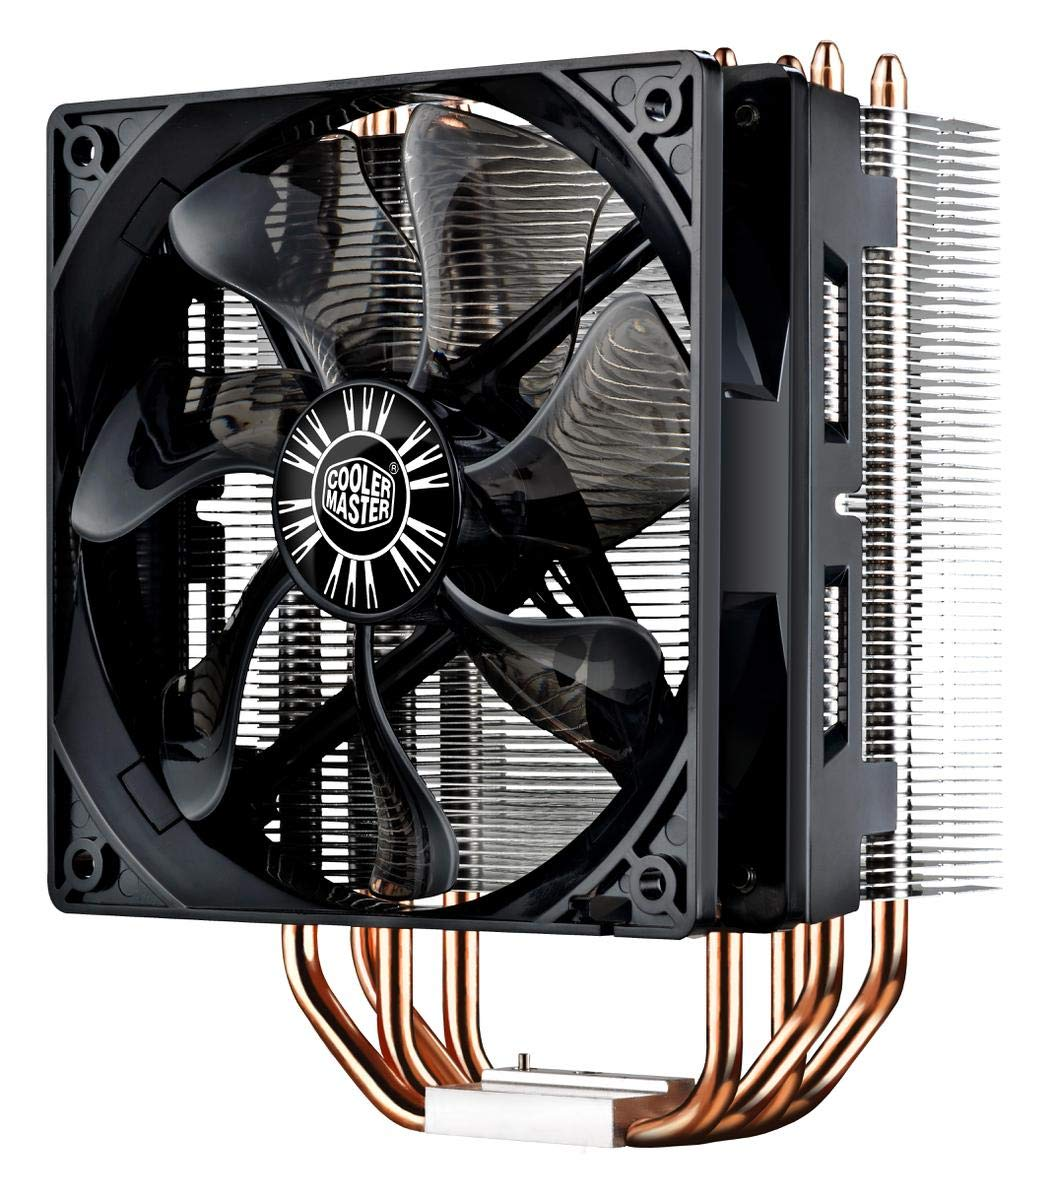 Cooler Master Hyper 212 Evo CPU Cooler with PWM Fan, Four Direct Contact Heat Pipes by Cooler Master